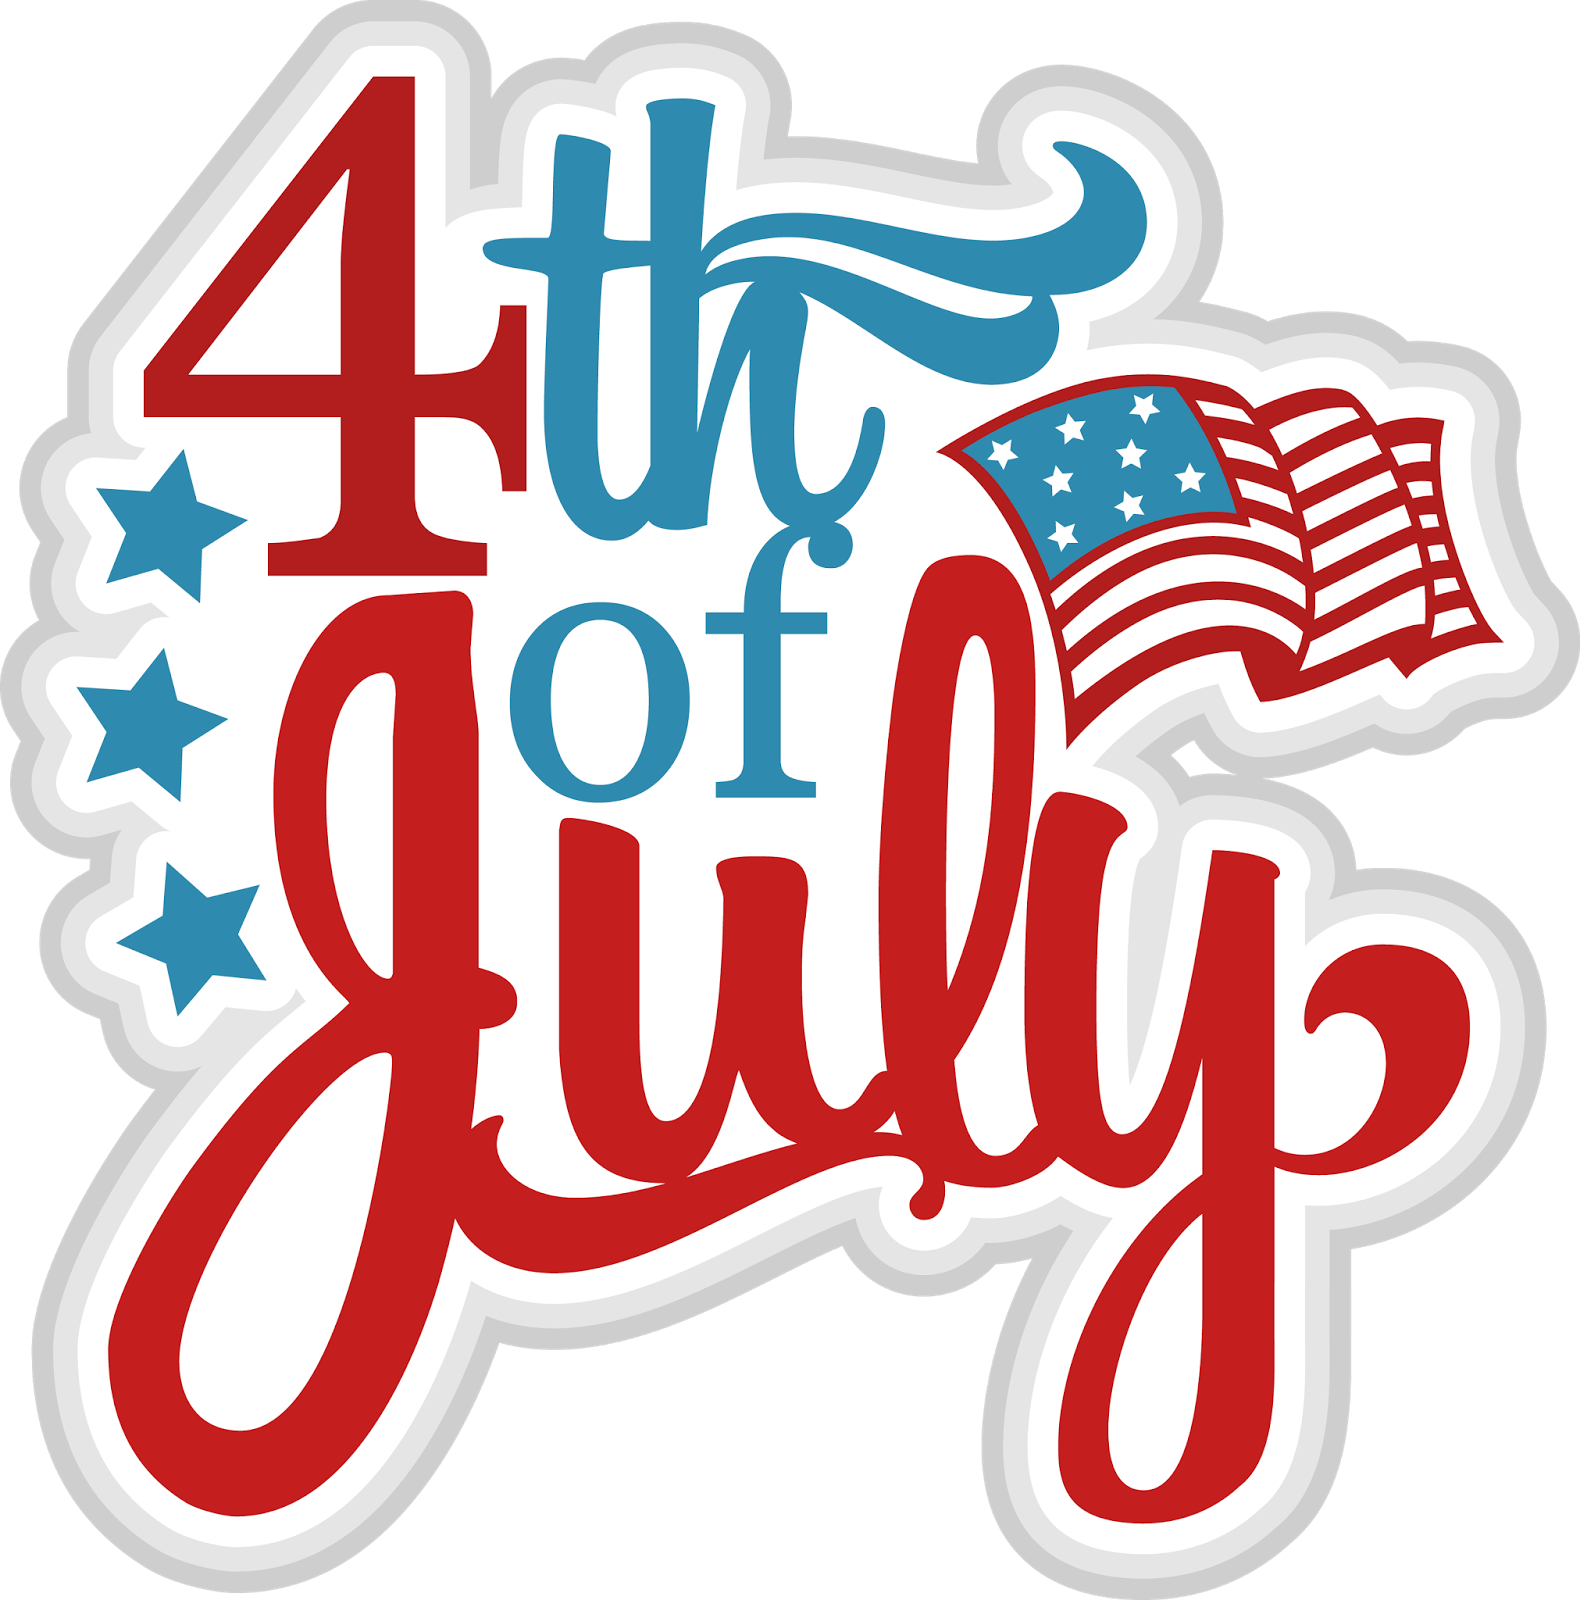 Jugendlicher Cool Clipart 4th Of July Clipart For Kids At Getdrawings Free For